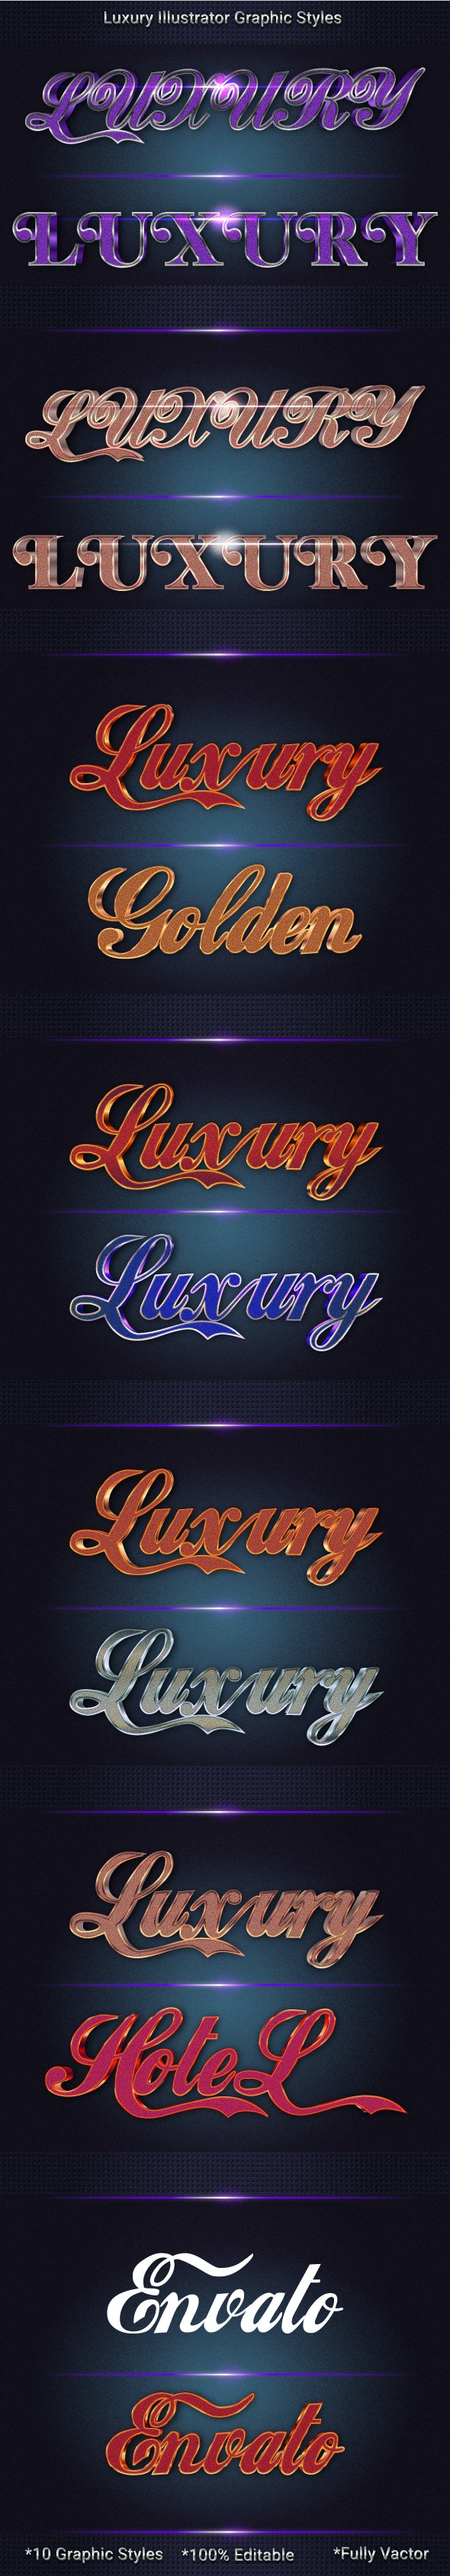 Luxury Metal Text Effects - Styles Illustrator